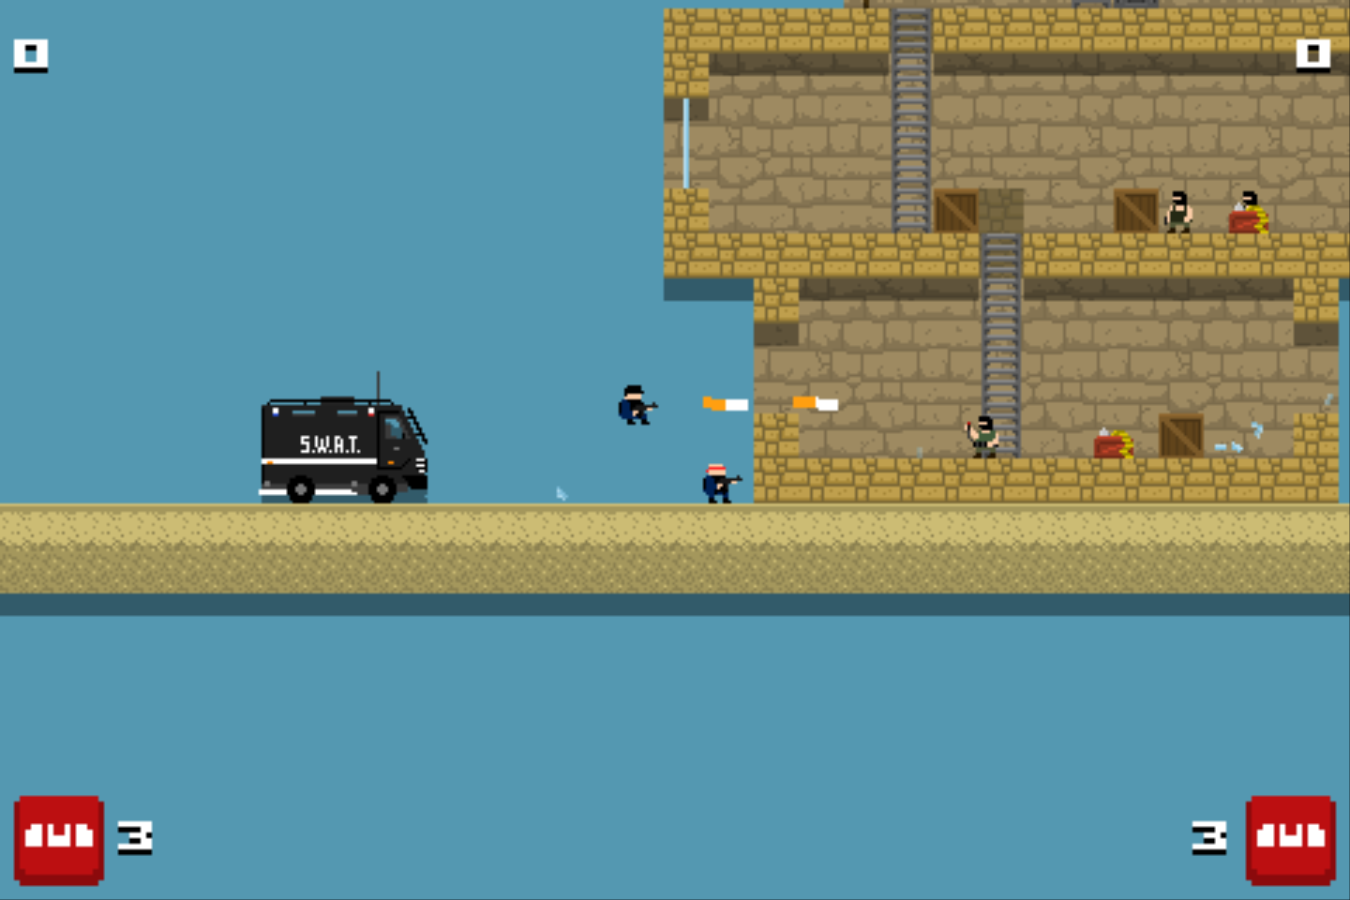 Play BroForce a free online game on Kongregate